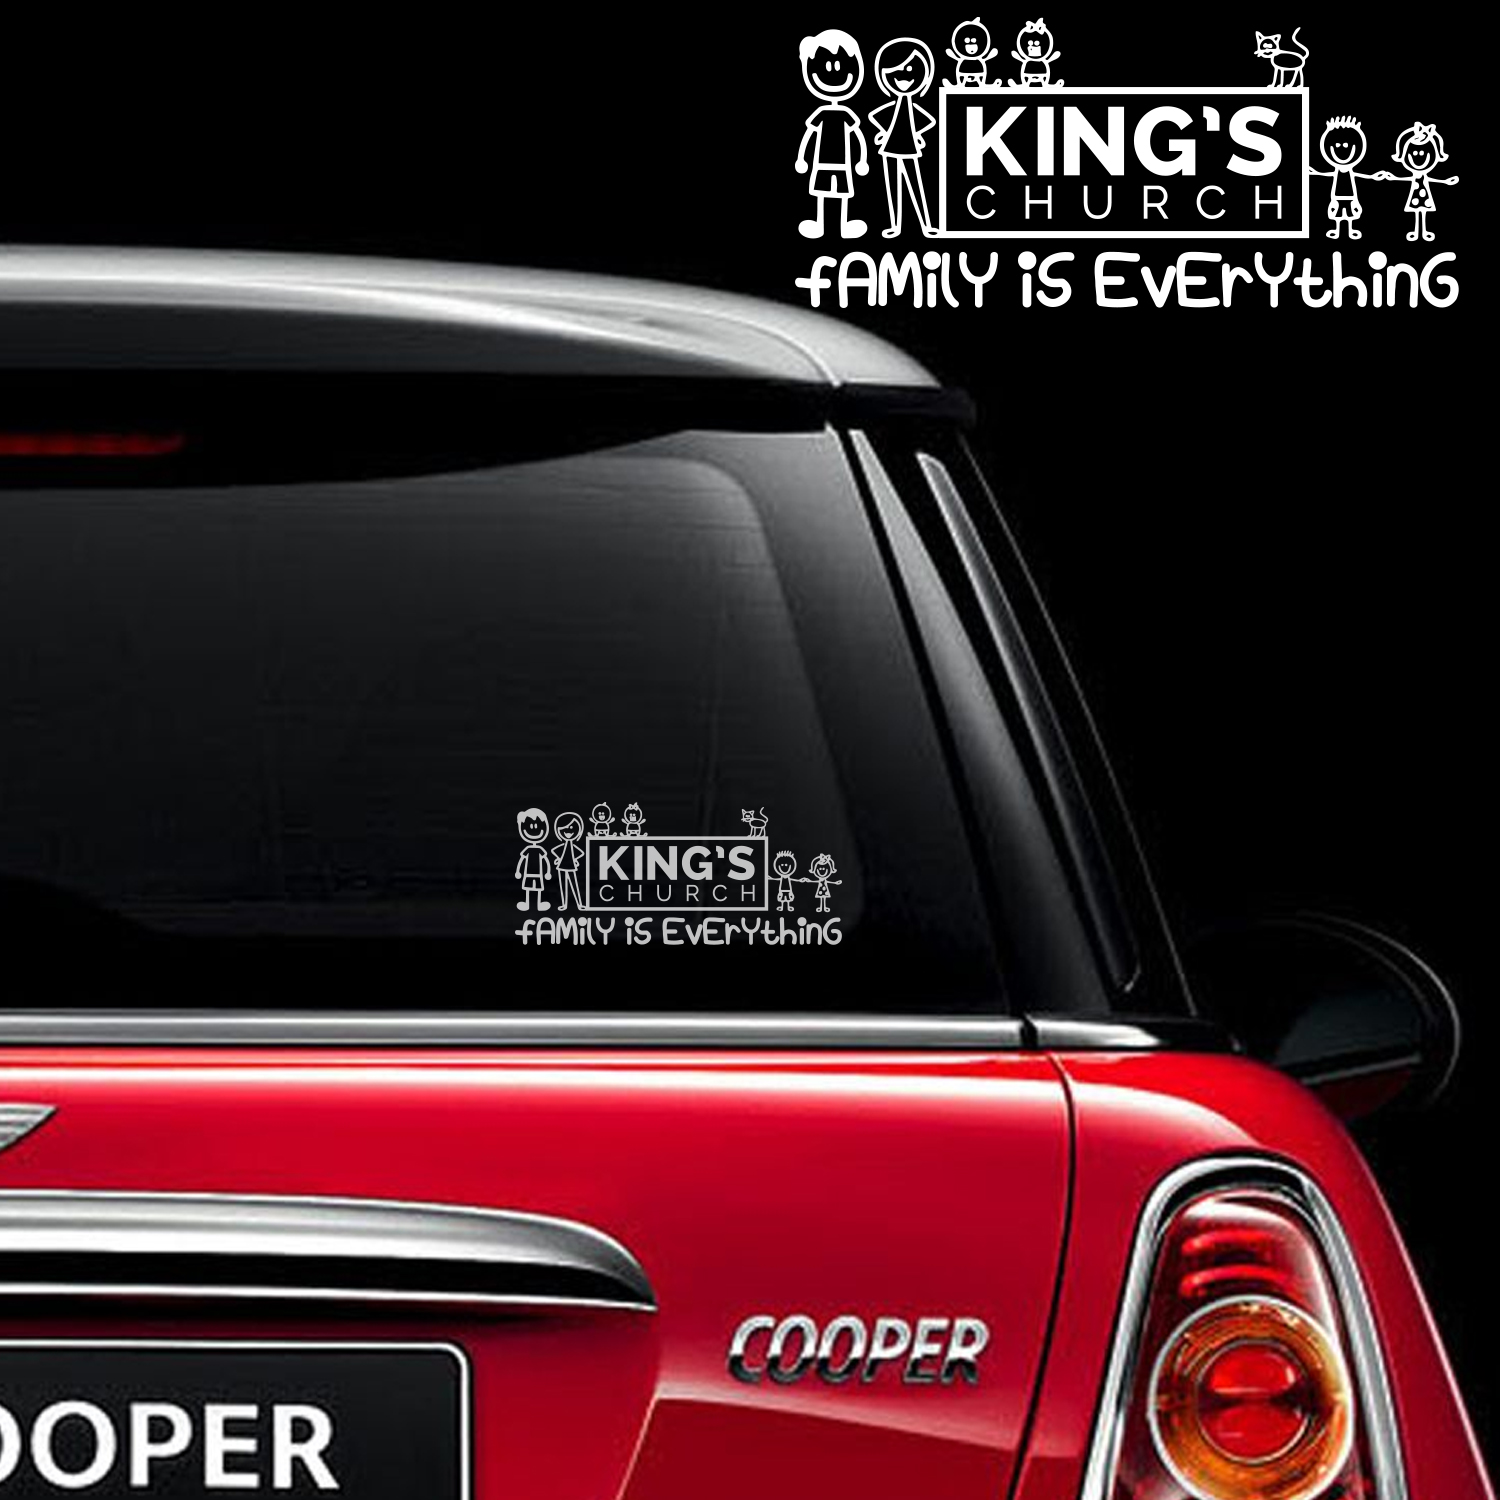 Car sticker designs images - My Church Family Rear Window Car Sticker